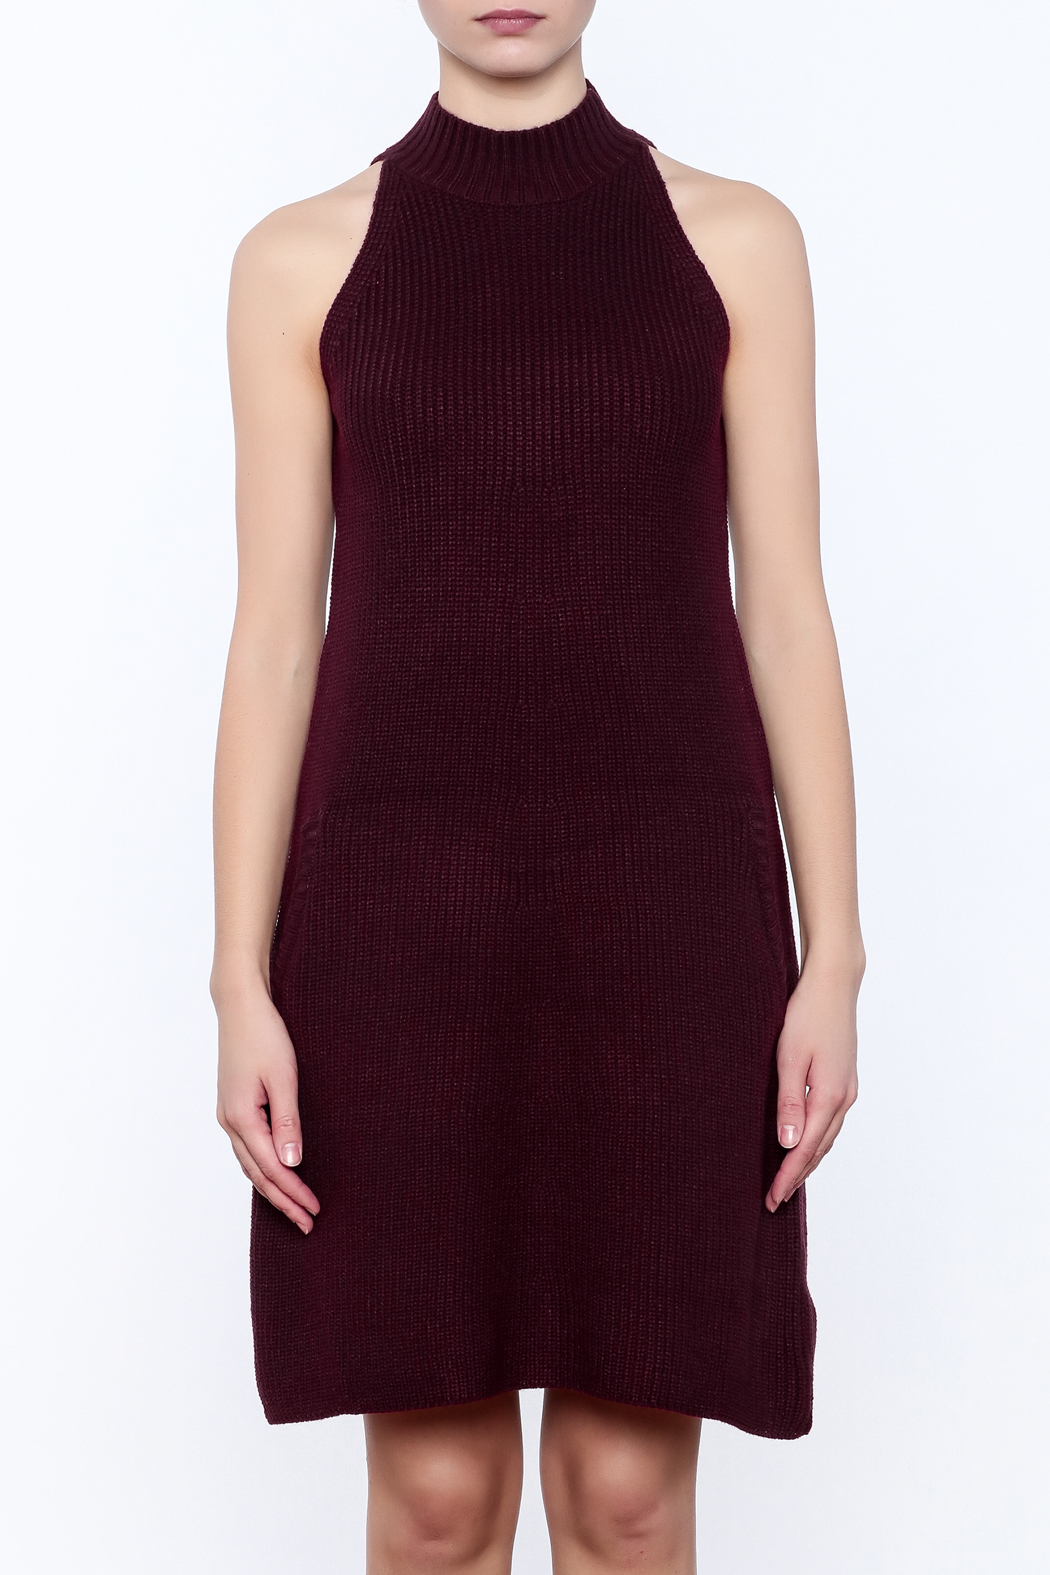 Bishop + Young Scarlett Sweater Dress - Side Cropped Image